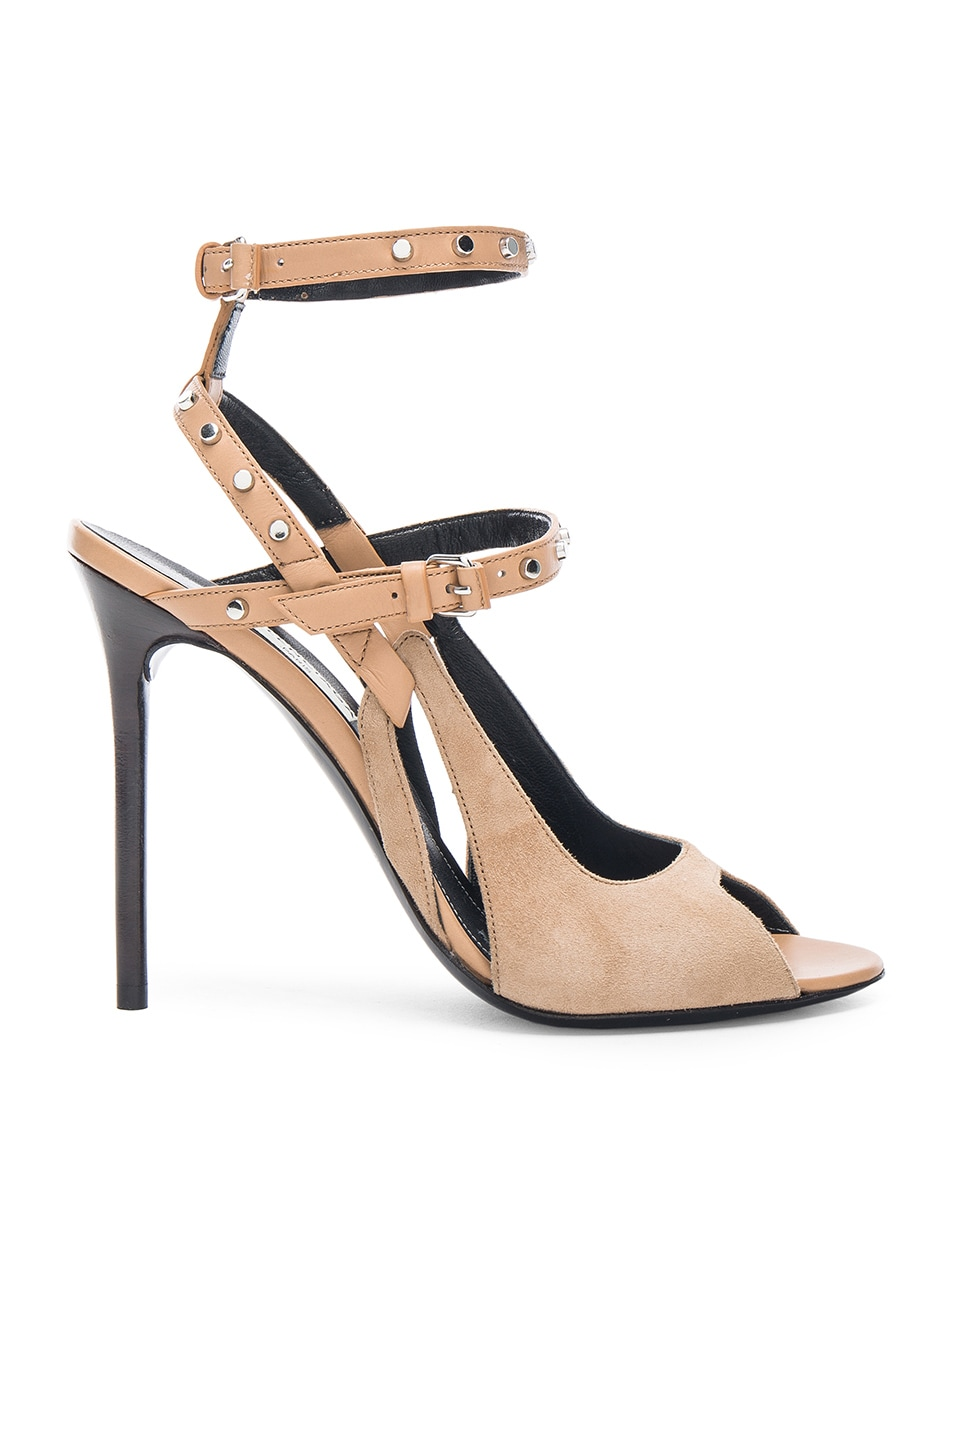 Image 1 of Balenciaga Leather & Suede Strappy Heels in Beige